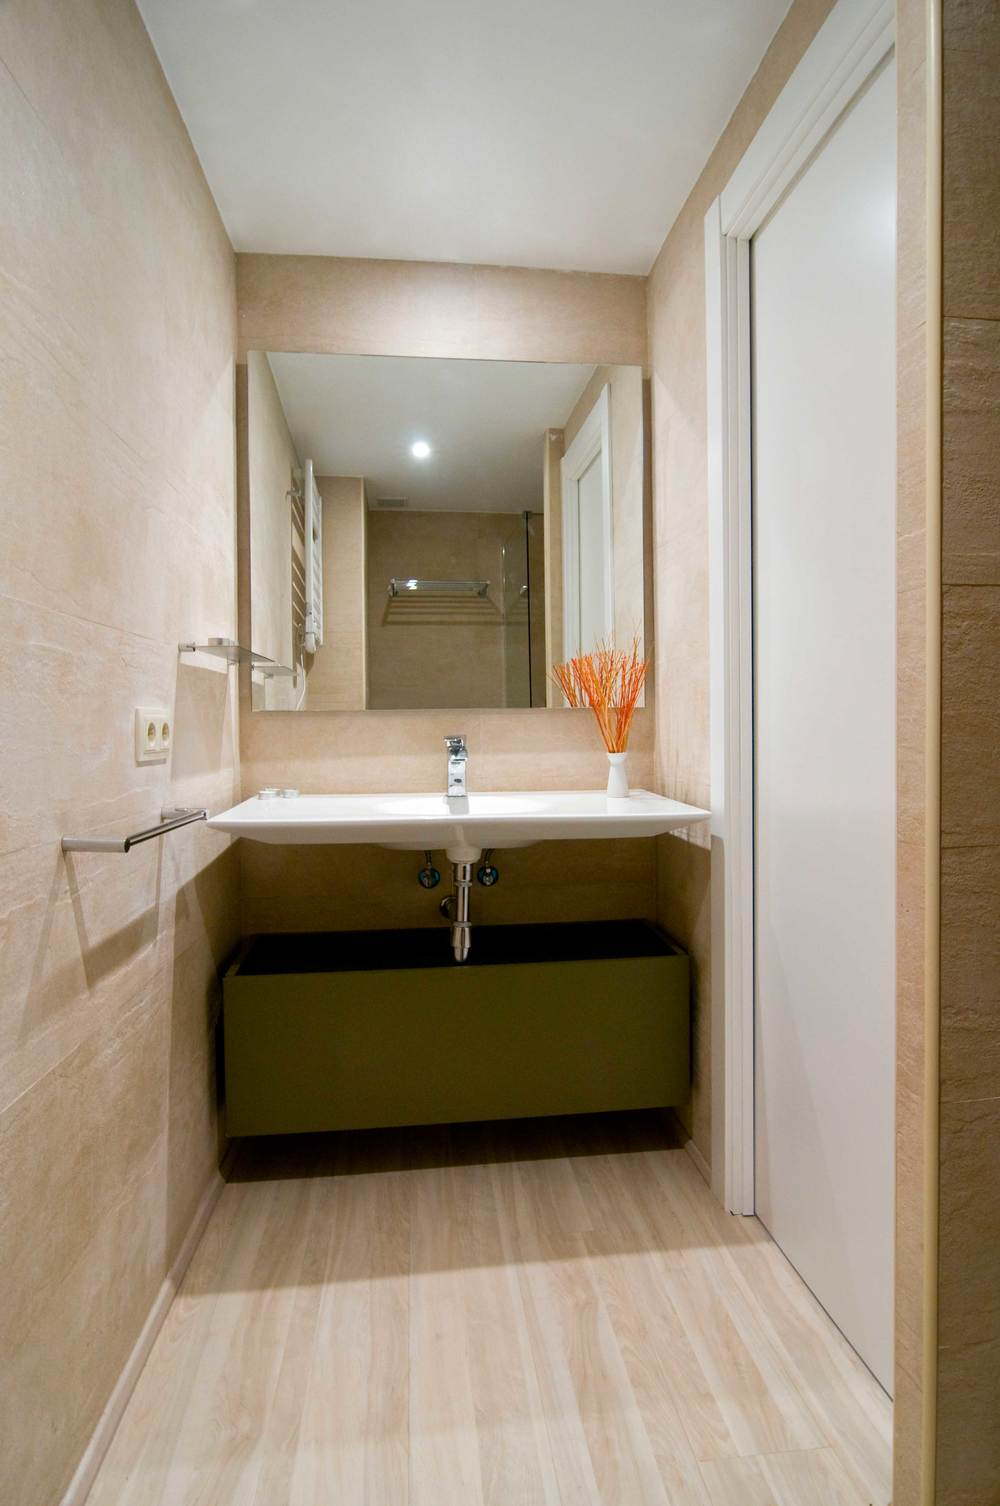 Cerdanya_Llivia_homerenovation_bathroom.jpg